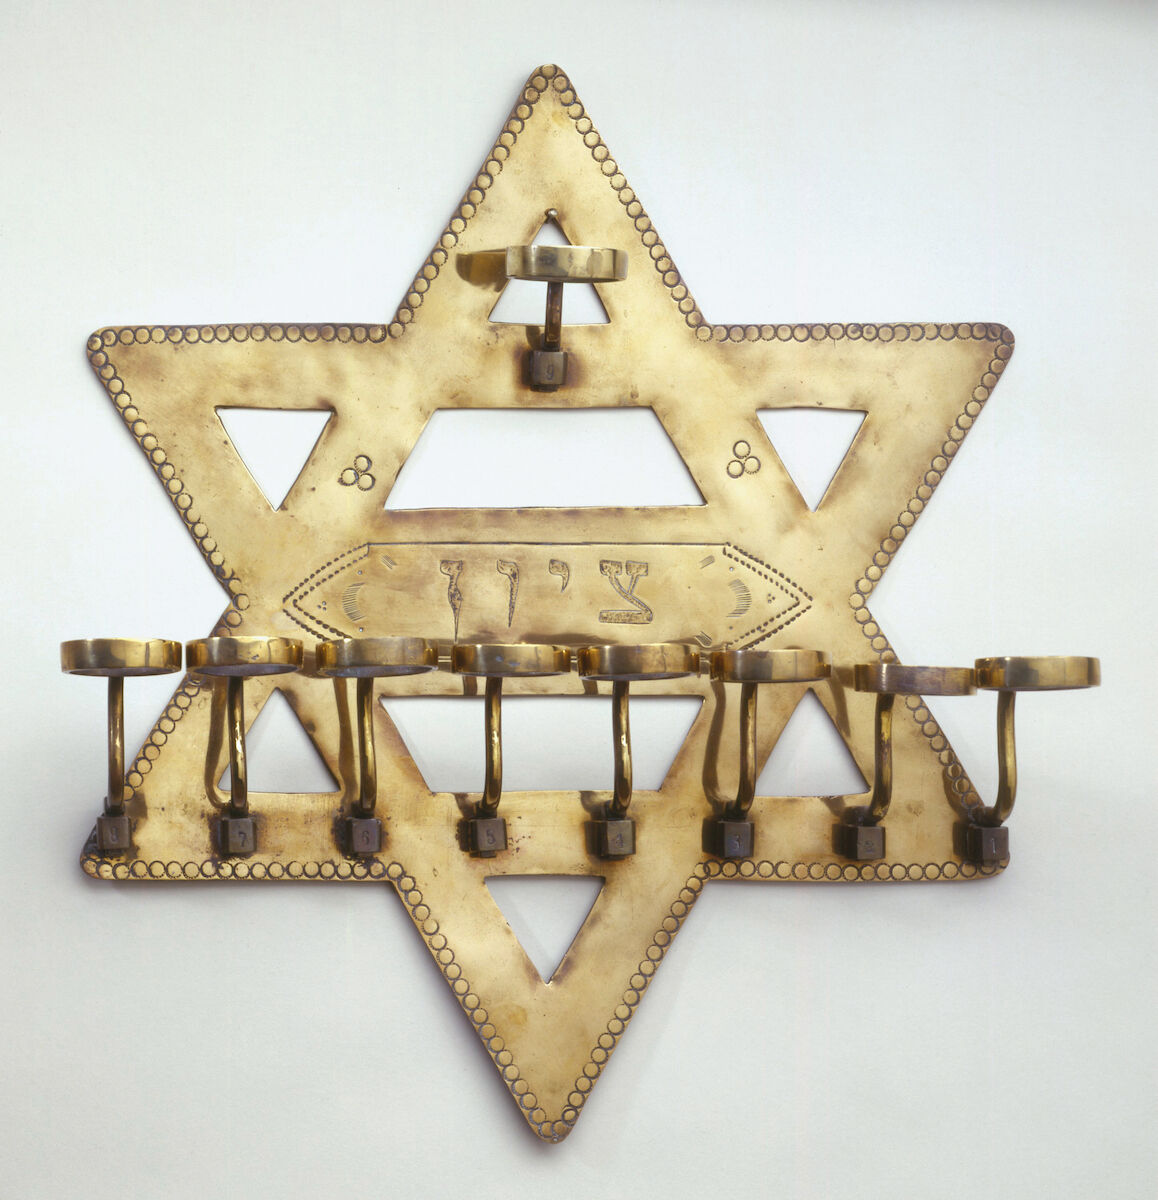 Hanukkah Lamp, India, end of the 19th-20th century. Courtesy of the Jewish Museum.